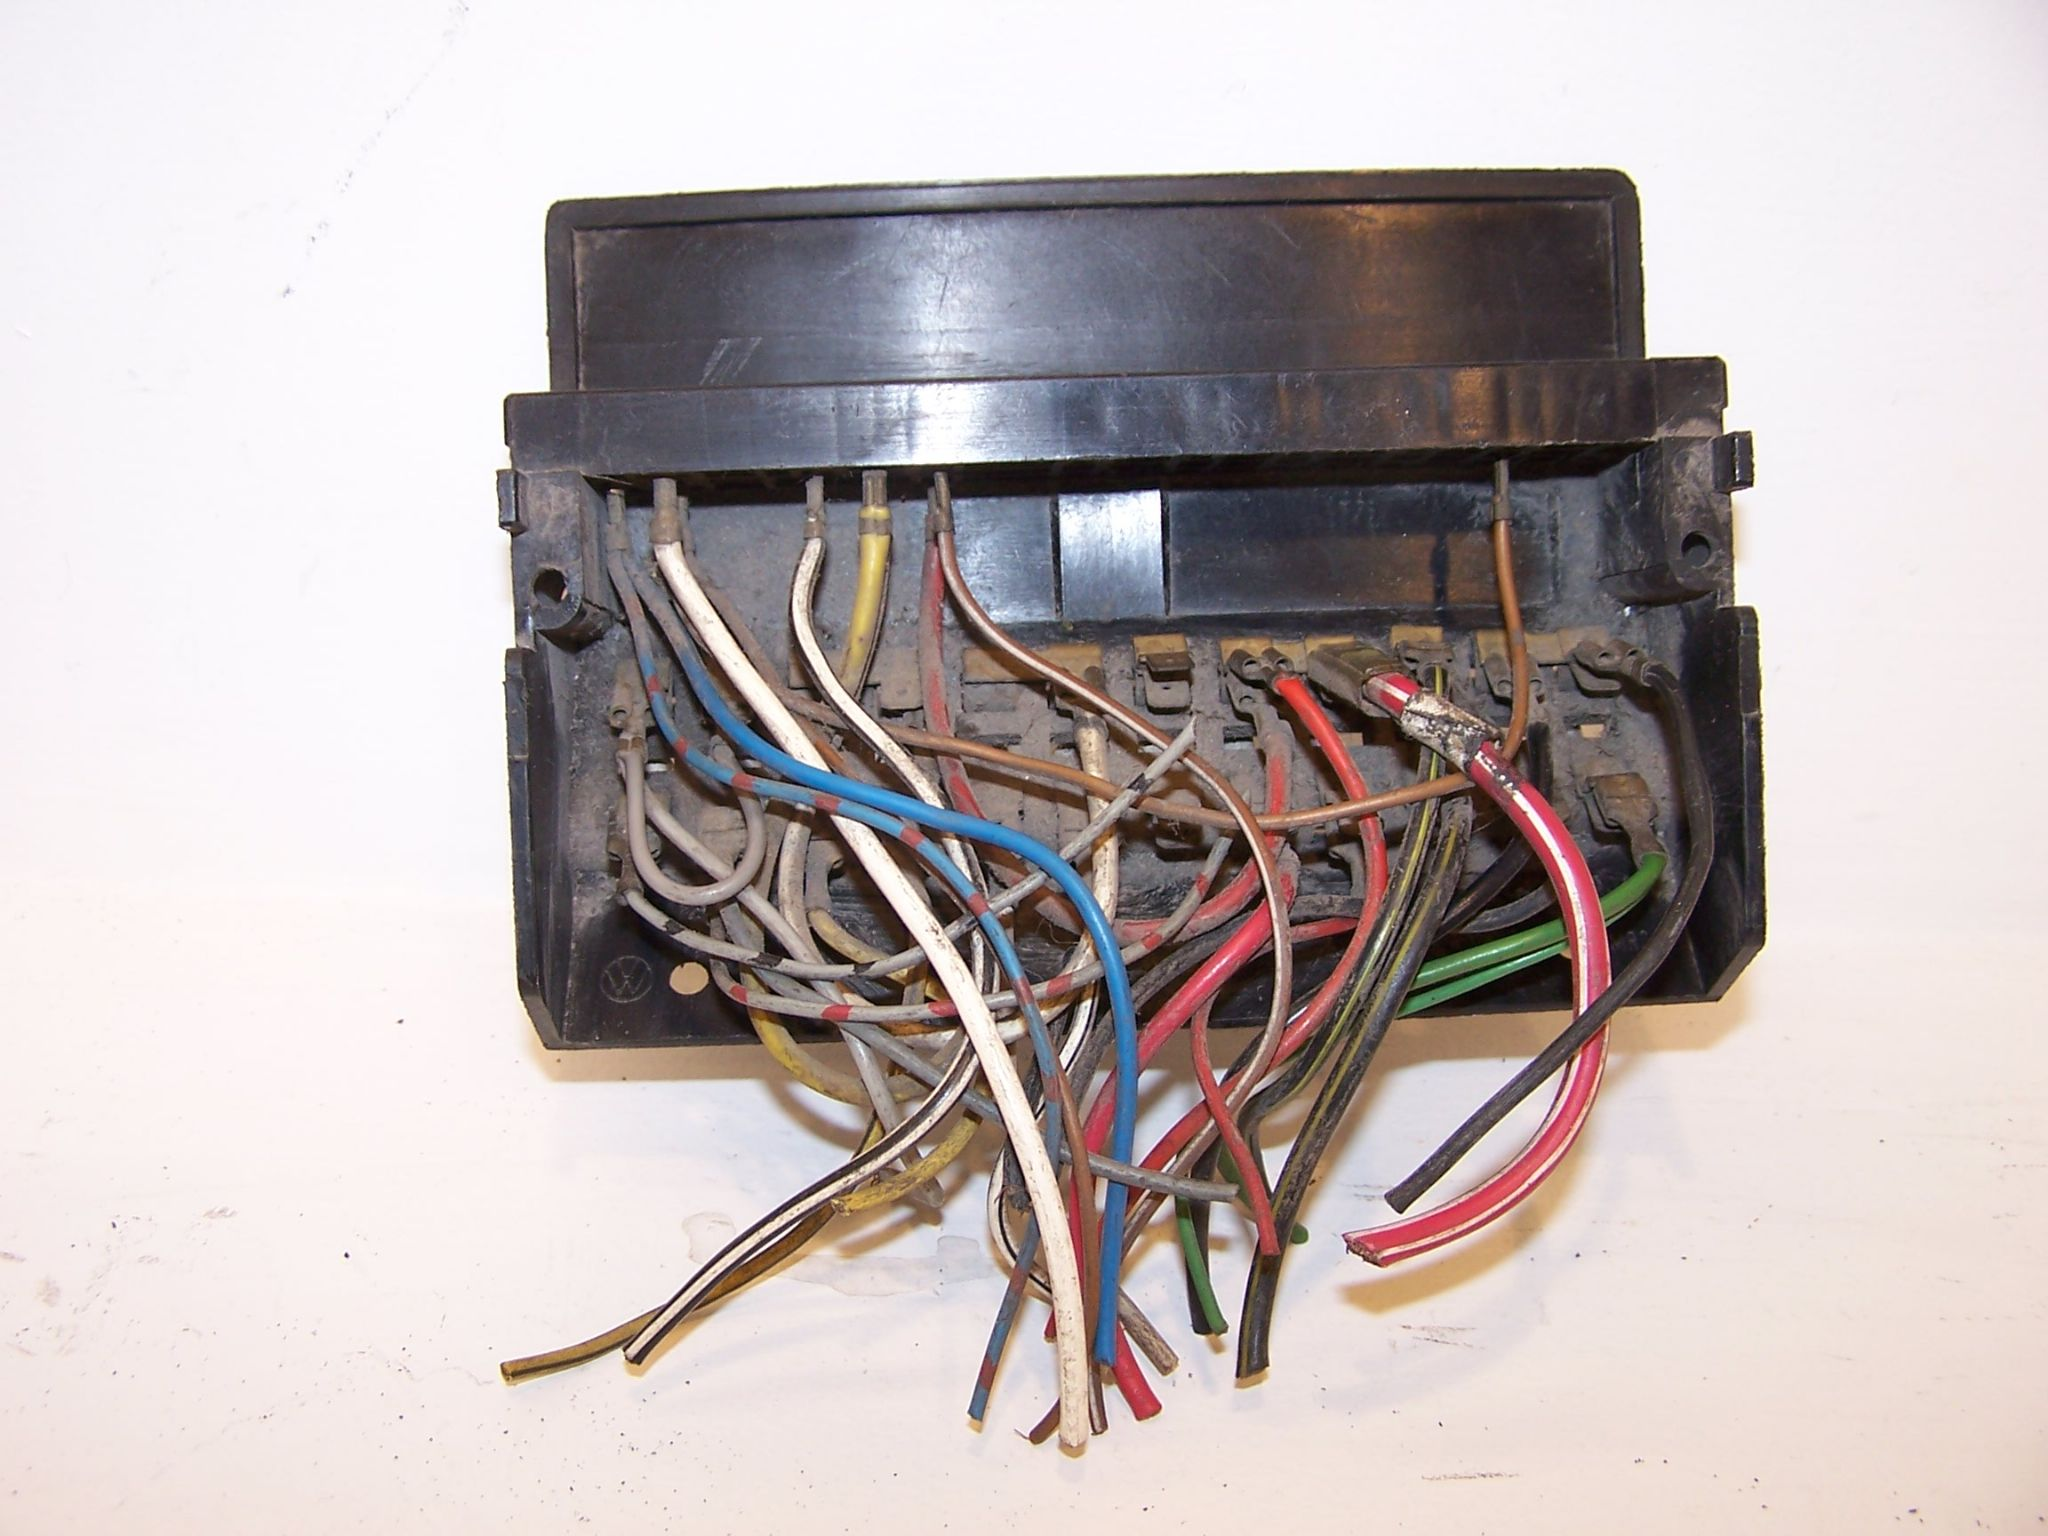 Vw Type 2 Fuse Box Electronic Wiring Diagrams Karmann Ghia Beetle 1303 1974 1979 2000 Jaguar Layout